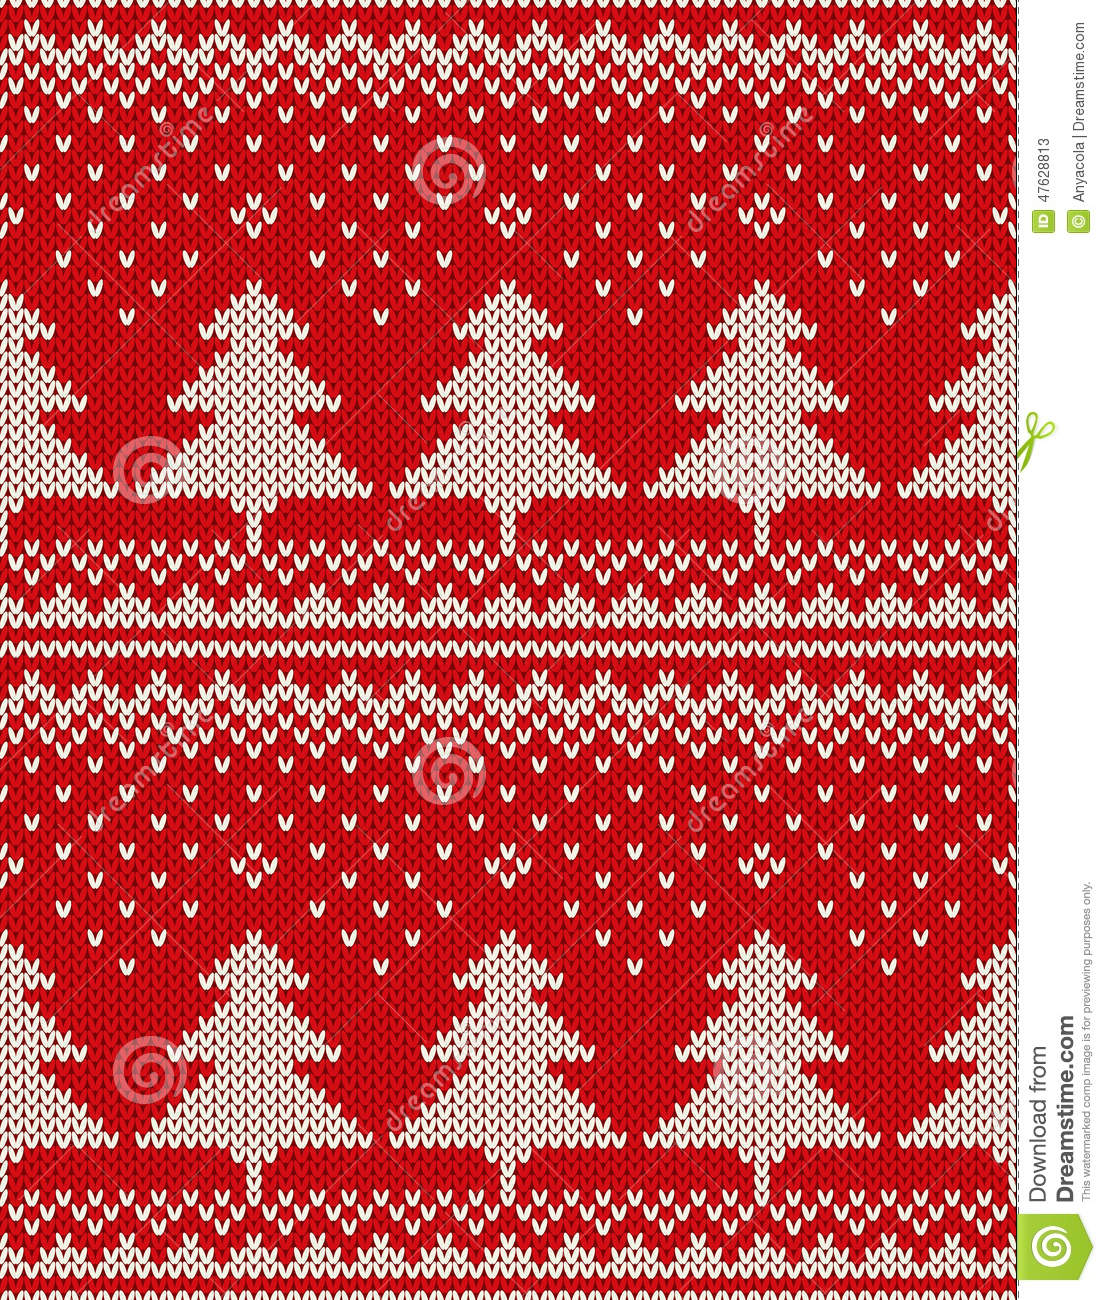 Christmas Sweater Design. Seamless Pattern With Christmas Trees ...